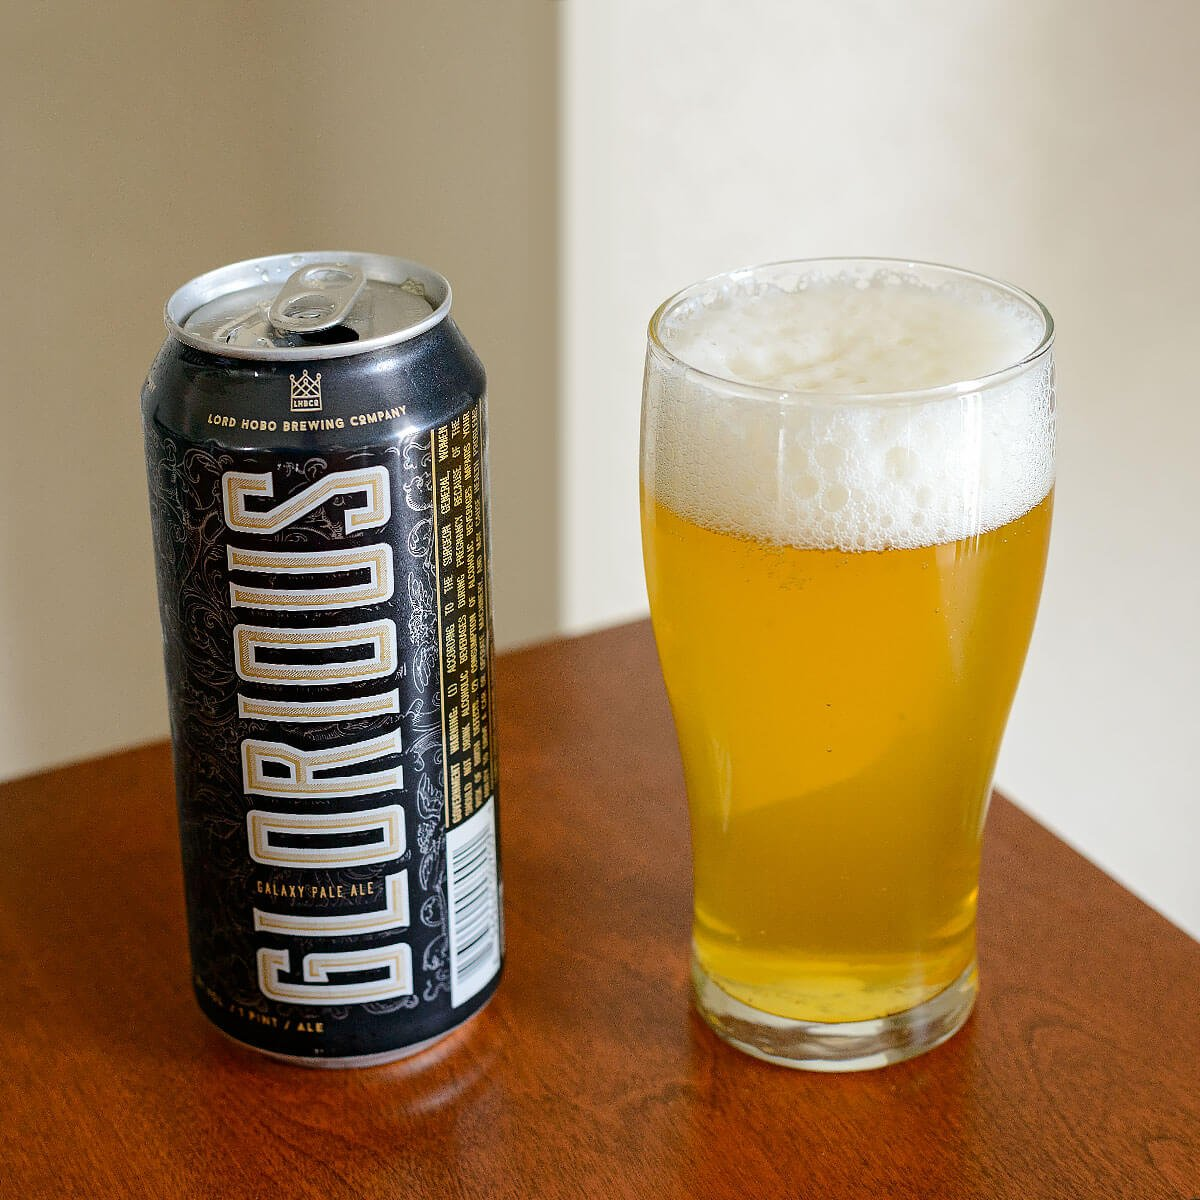 Glorious, an American Pale Ale by Lord Hobo Brewing Co.